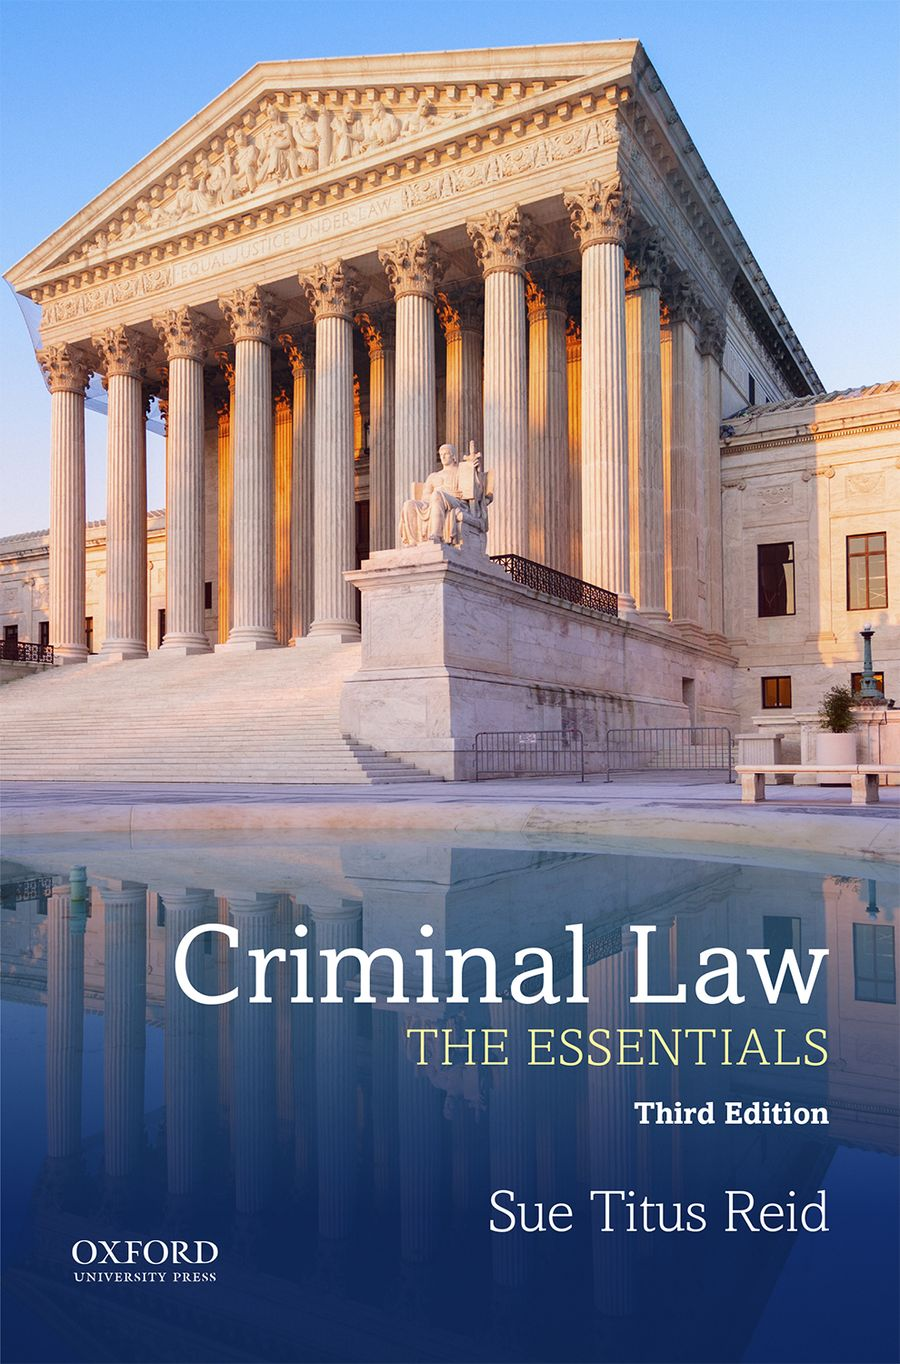 Criminal Law: The Essentials 3e, Instructor Resources